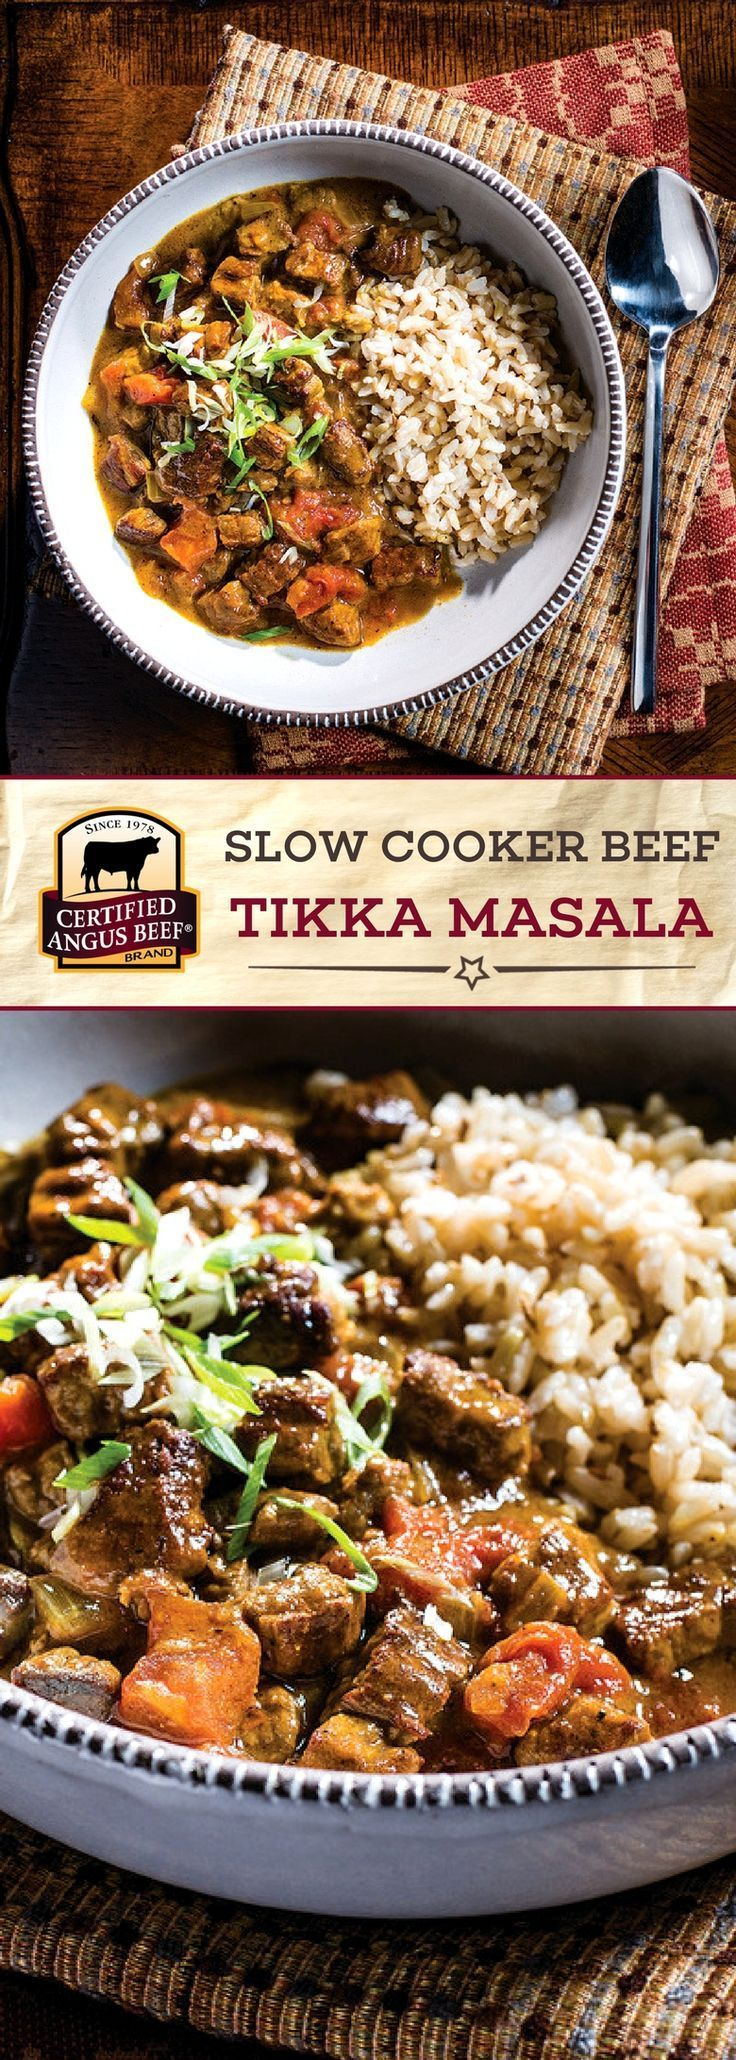 Certified Angus Beef®️️️️️️️️️ brand Slow Cooker Beef Tikka Masala is the BEST comfort food! Bottom round flat beef combined with a DELICIOUS curry mixture makes this dish stand out. It's so EASY to make this tasty tikka masala recipe in the slow cooker!  #bestangusbeef #certifiedangusbeef #beefrecipe #easyrecipes #curryrecipe #slowcookerrecipes